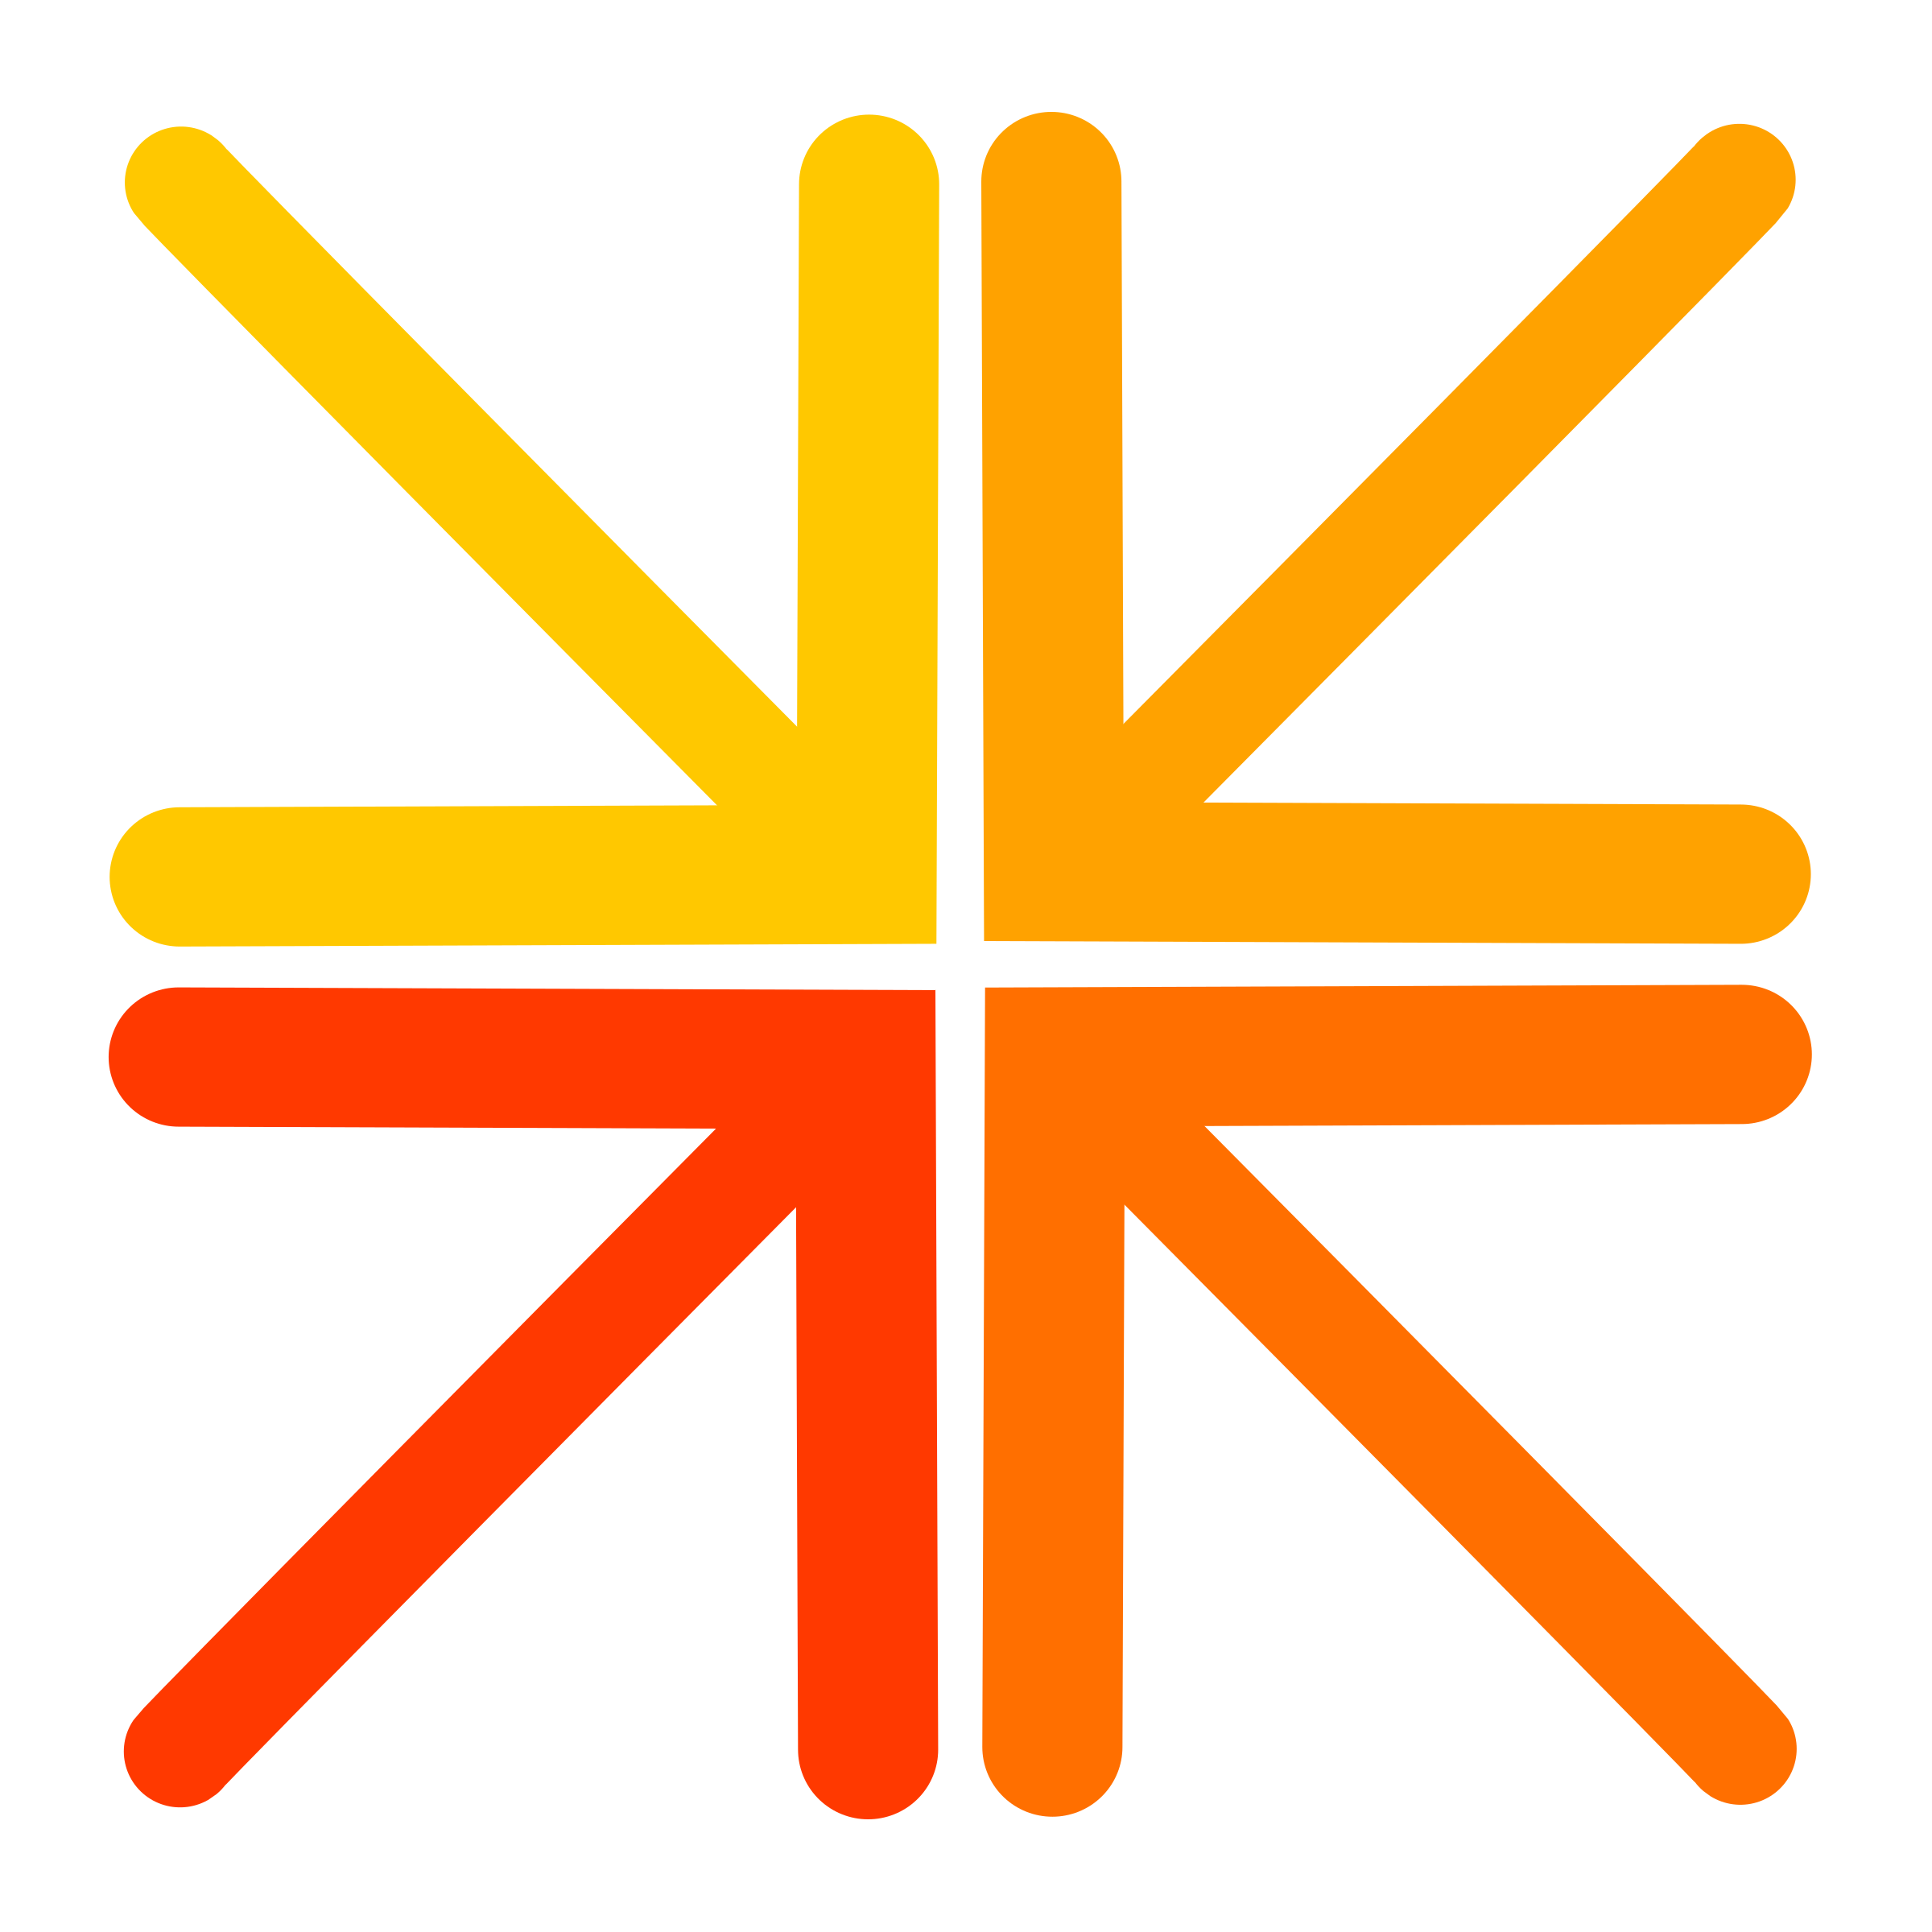 Free entry png. Culture logo orange icons